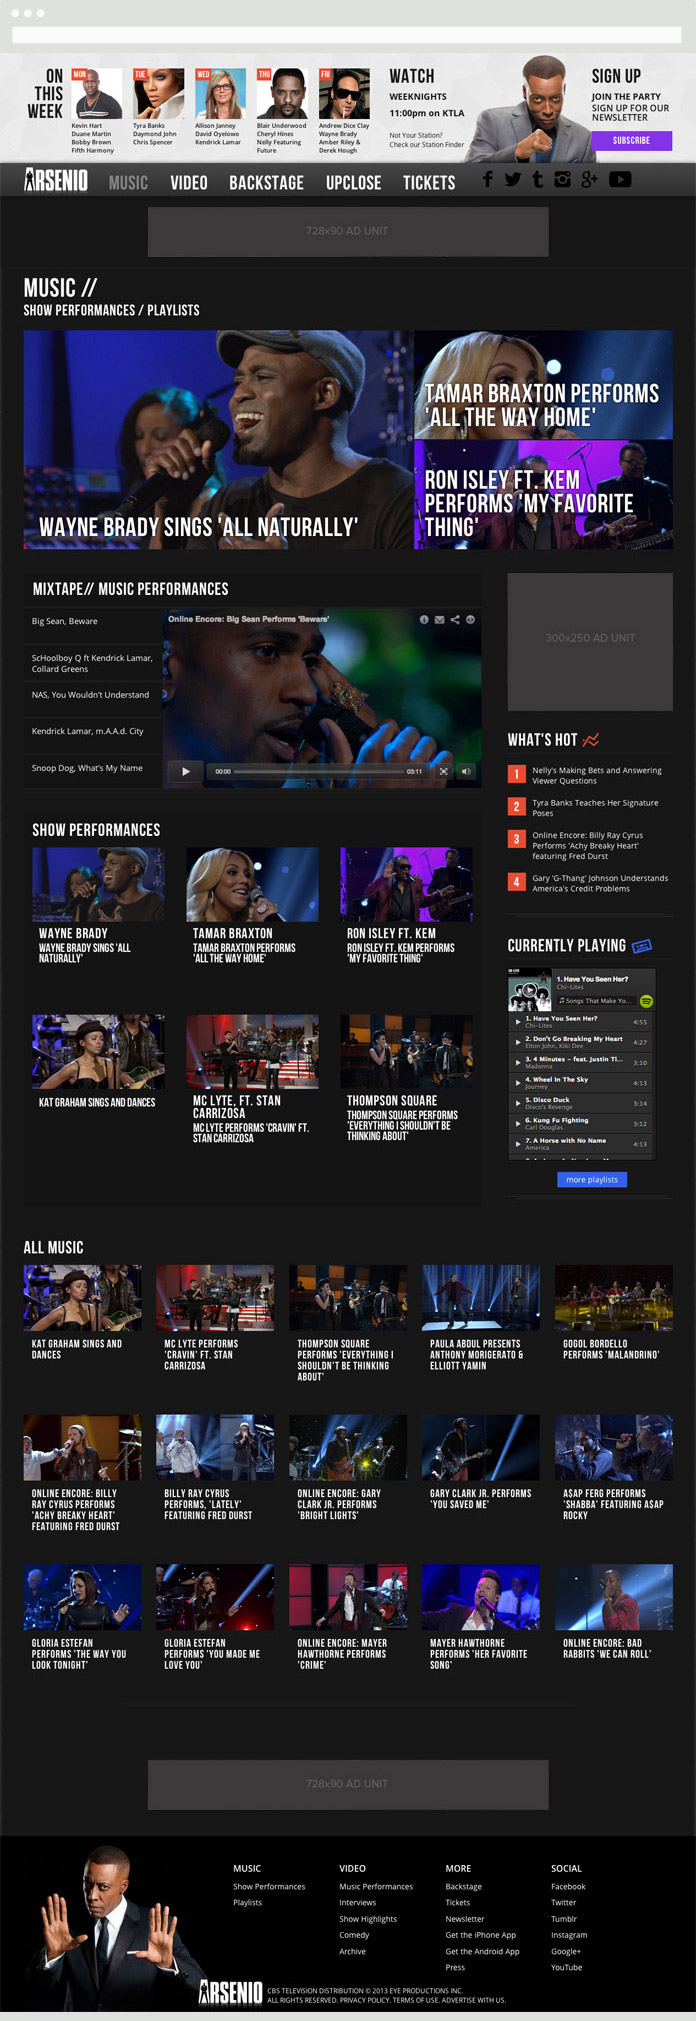 Image of the Arsenio Hall Music Page